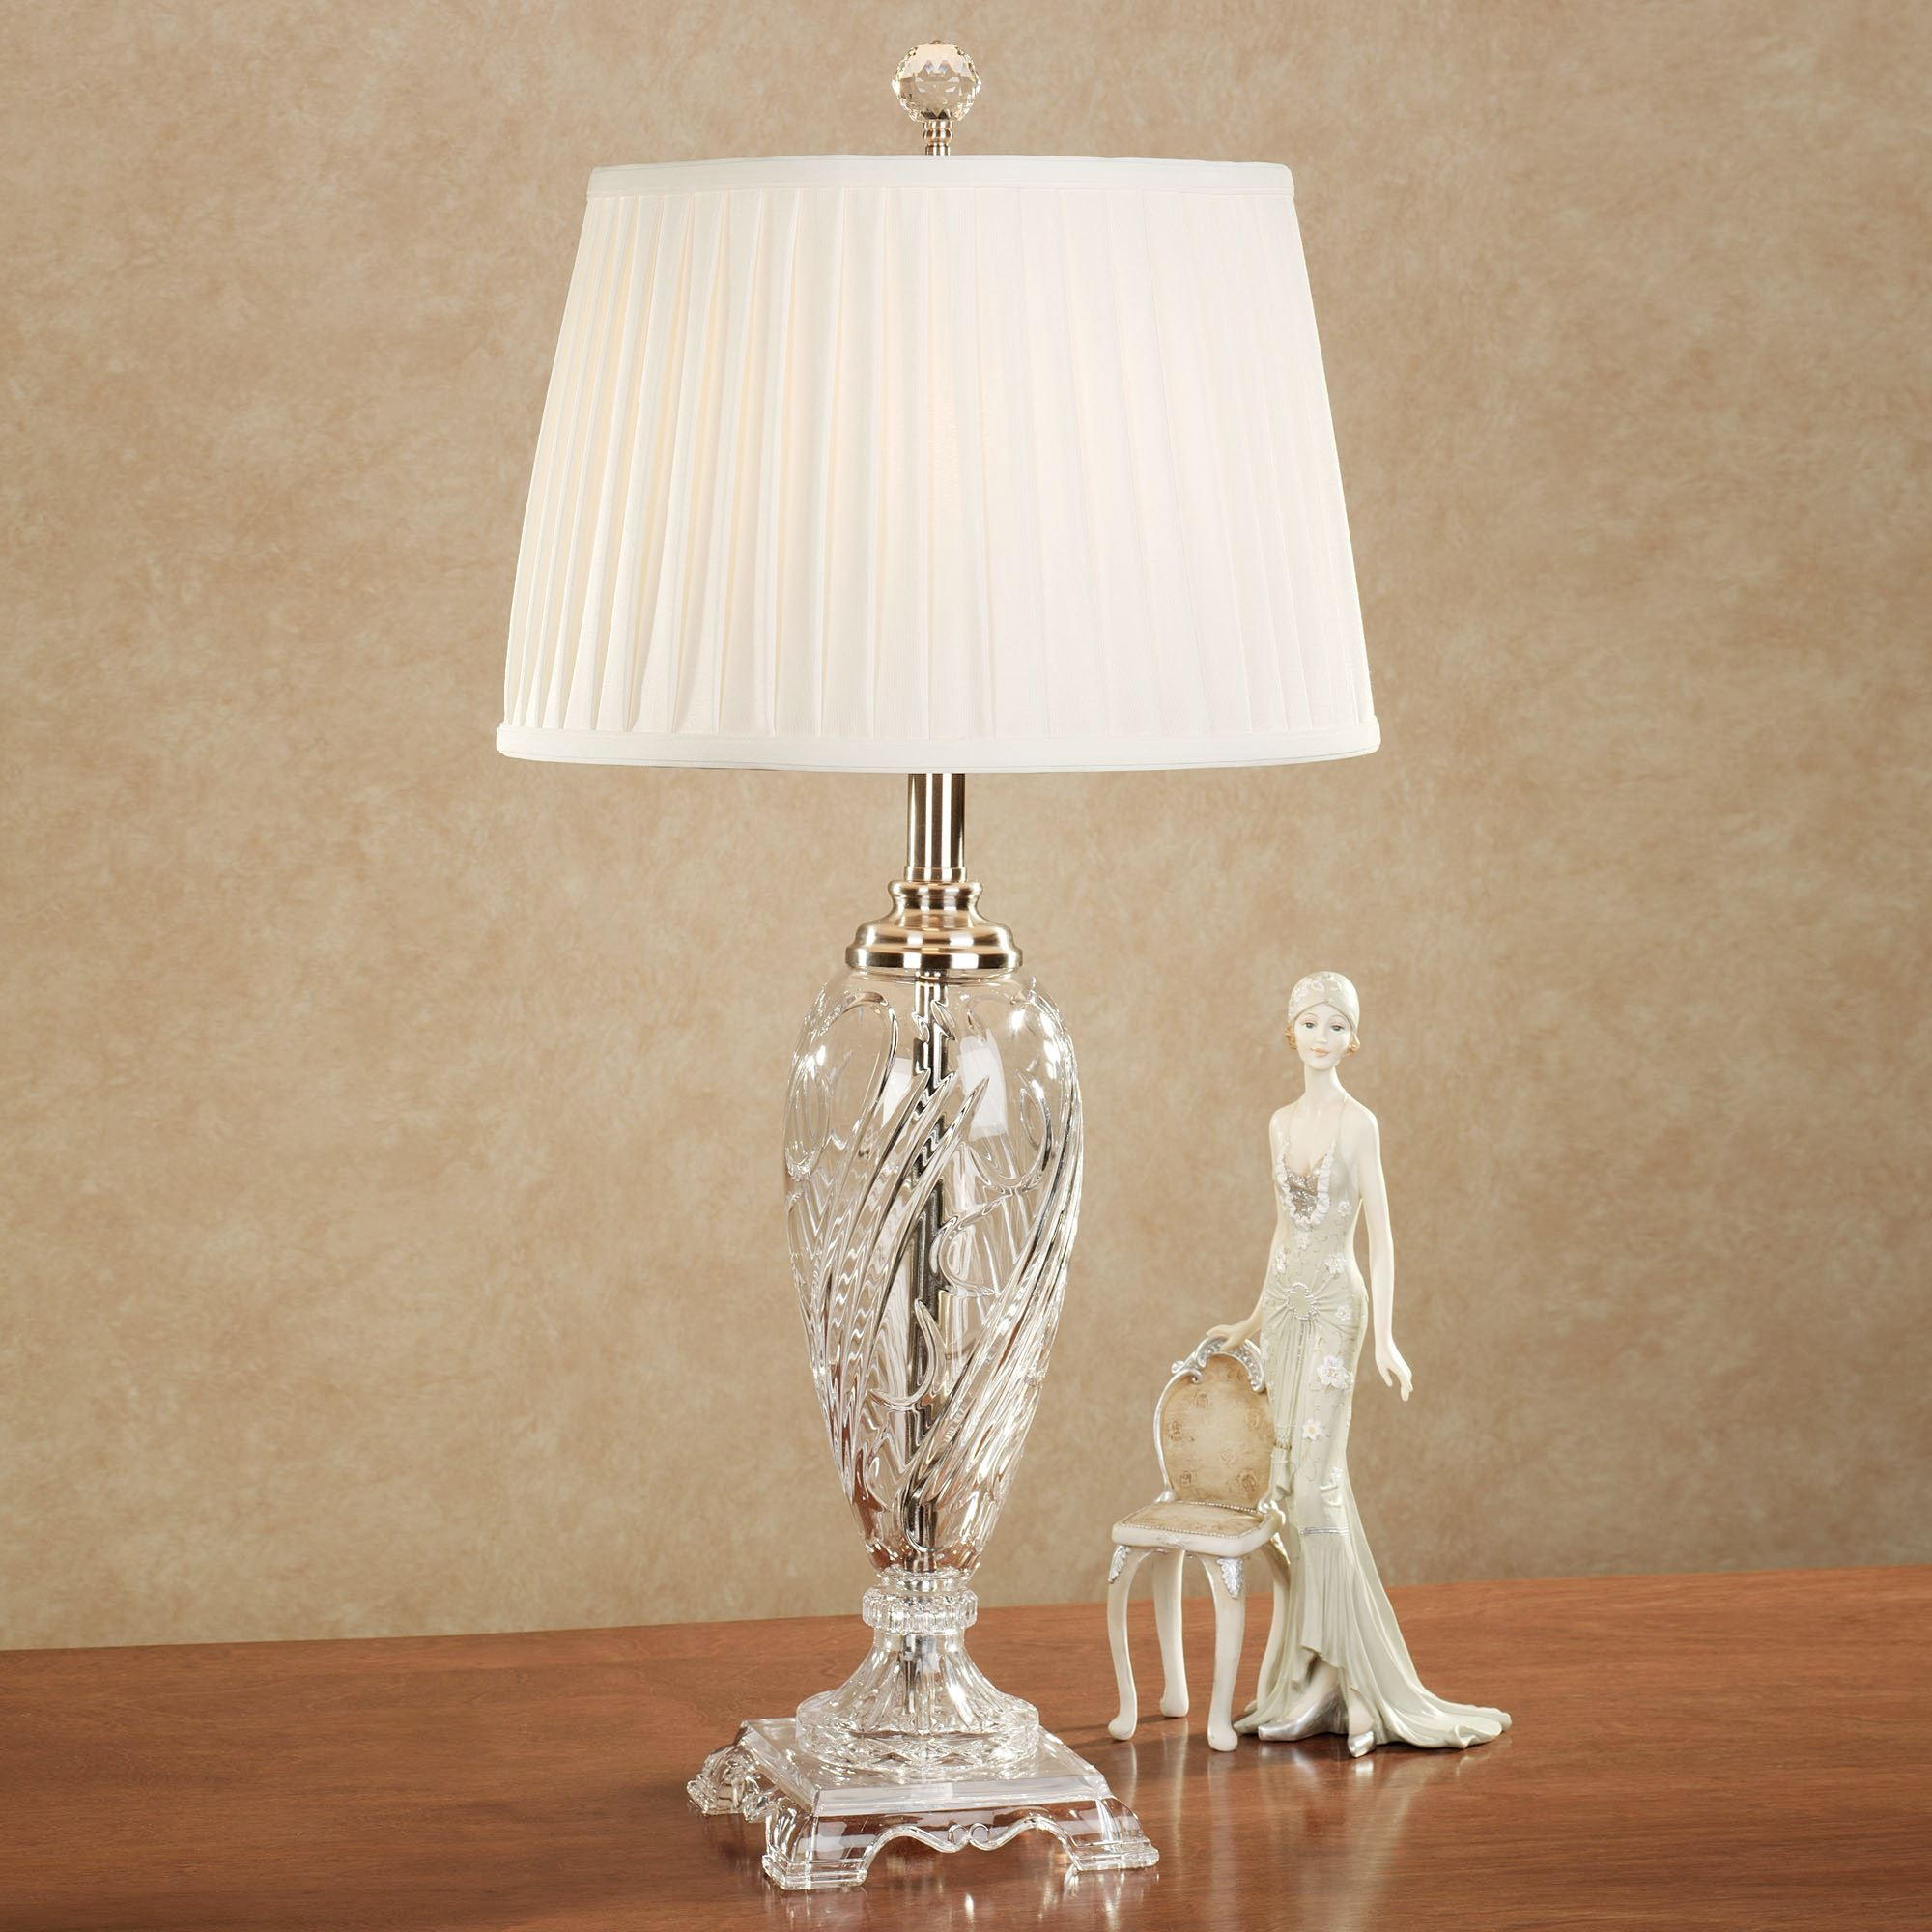 Elegant Black Shade Crystal Table Lamps Nz Morgana Crystal Table Lamp Polished Click To Expand Morgana Crystal Table Lamp By Dale Tiffany Crystal Crystal Table Lamps houzz 01 Crystal Table Lamps